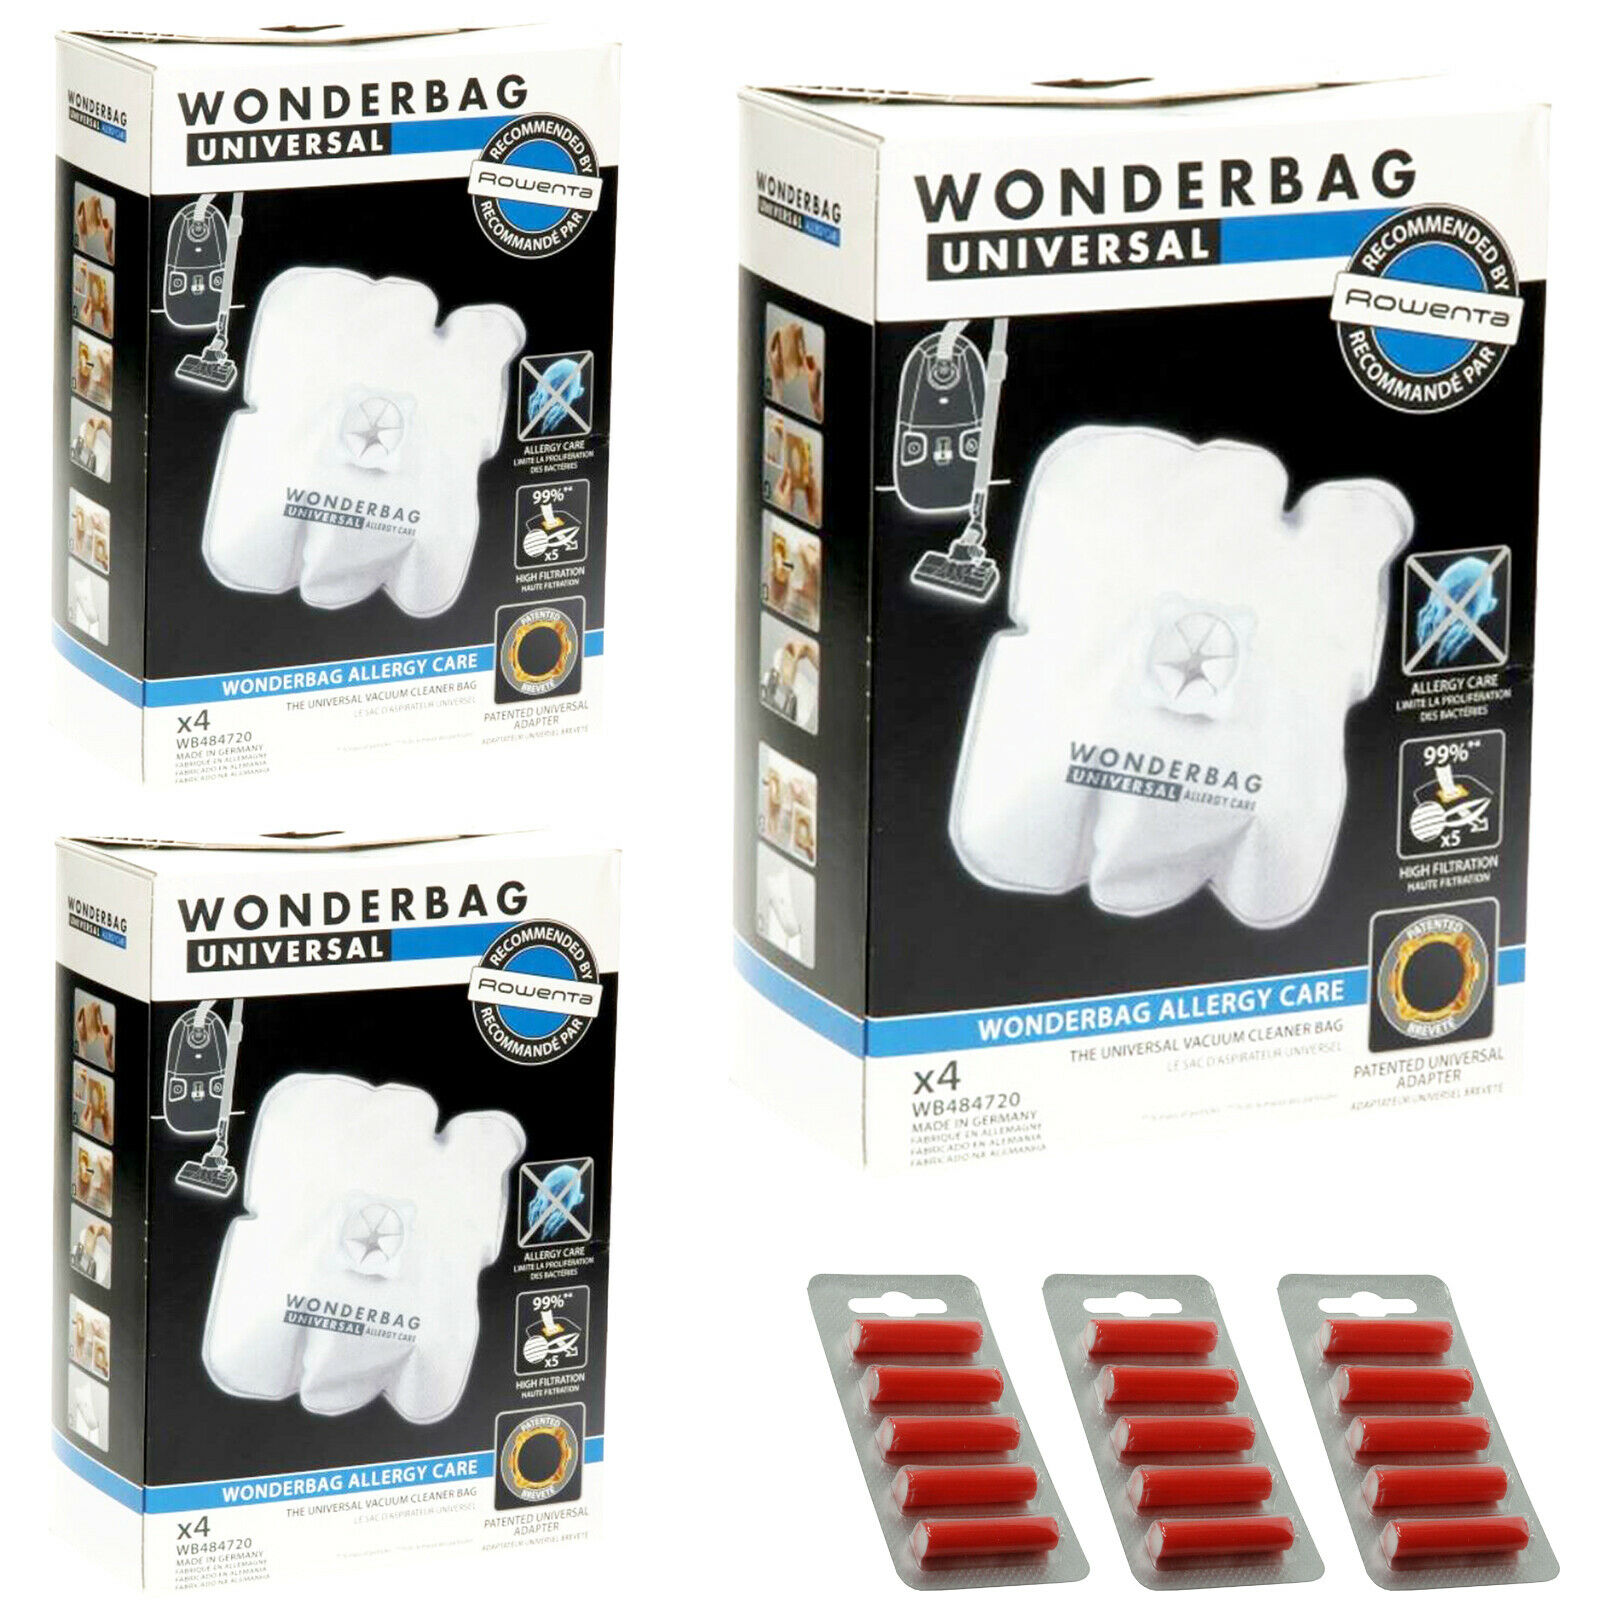 12 x Wonderbag Allergy Care Vacuum Cleaner Dust Bags ROWENTA TEFAL MOULINEX + Fr